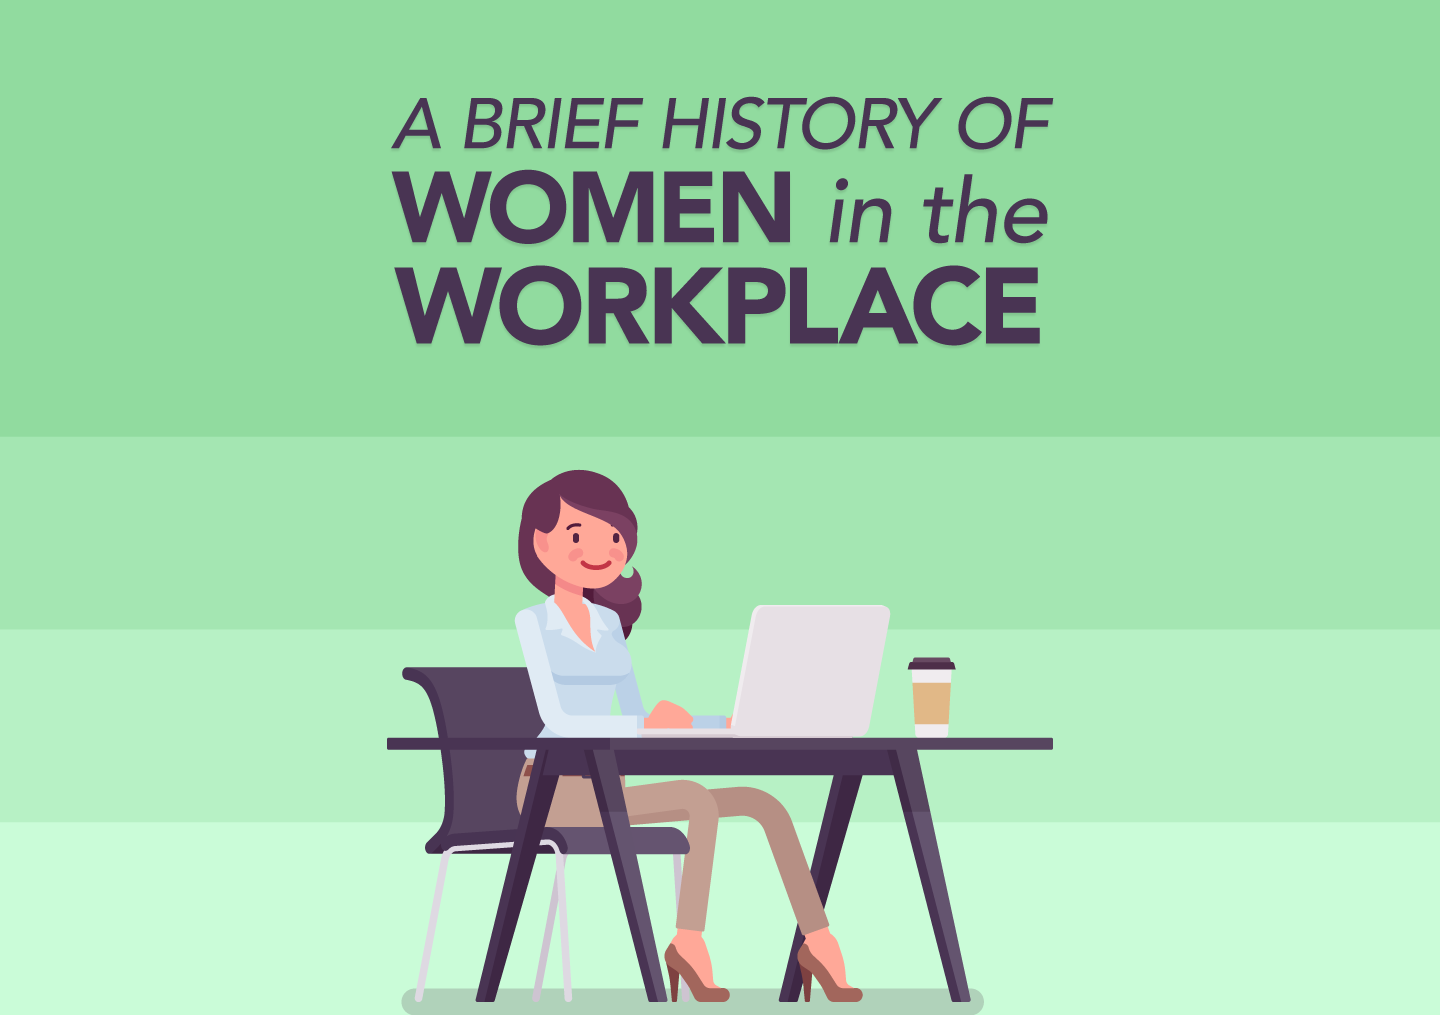 Brief-history-of-women-in-workplace-timeline-SL-IG-TRUNCATED (1)